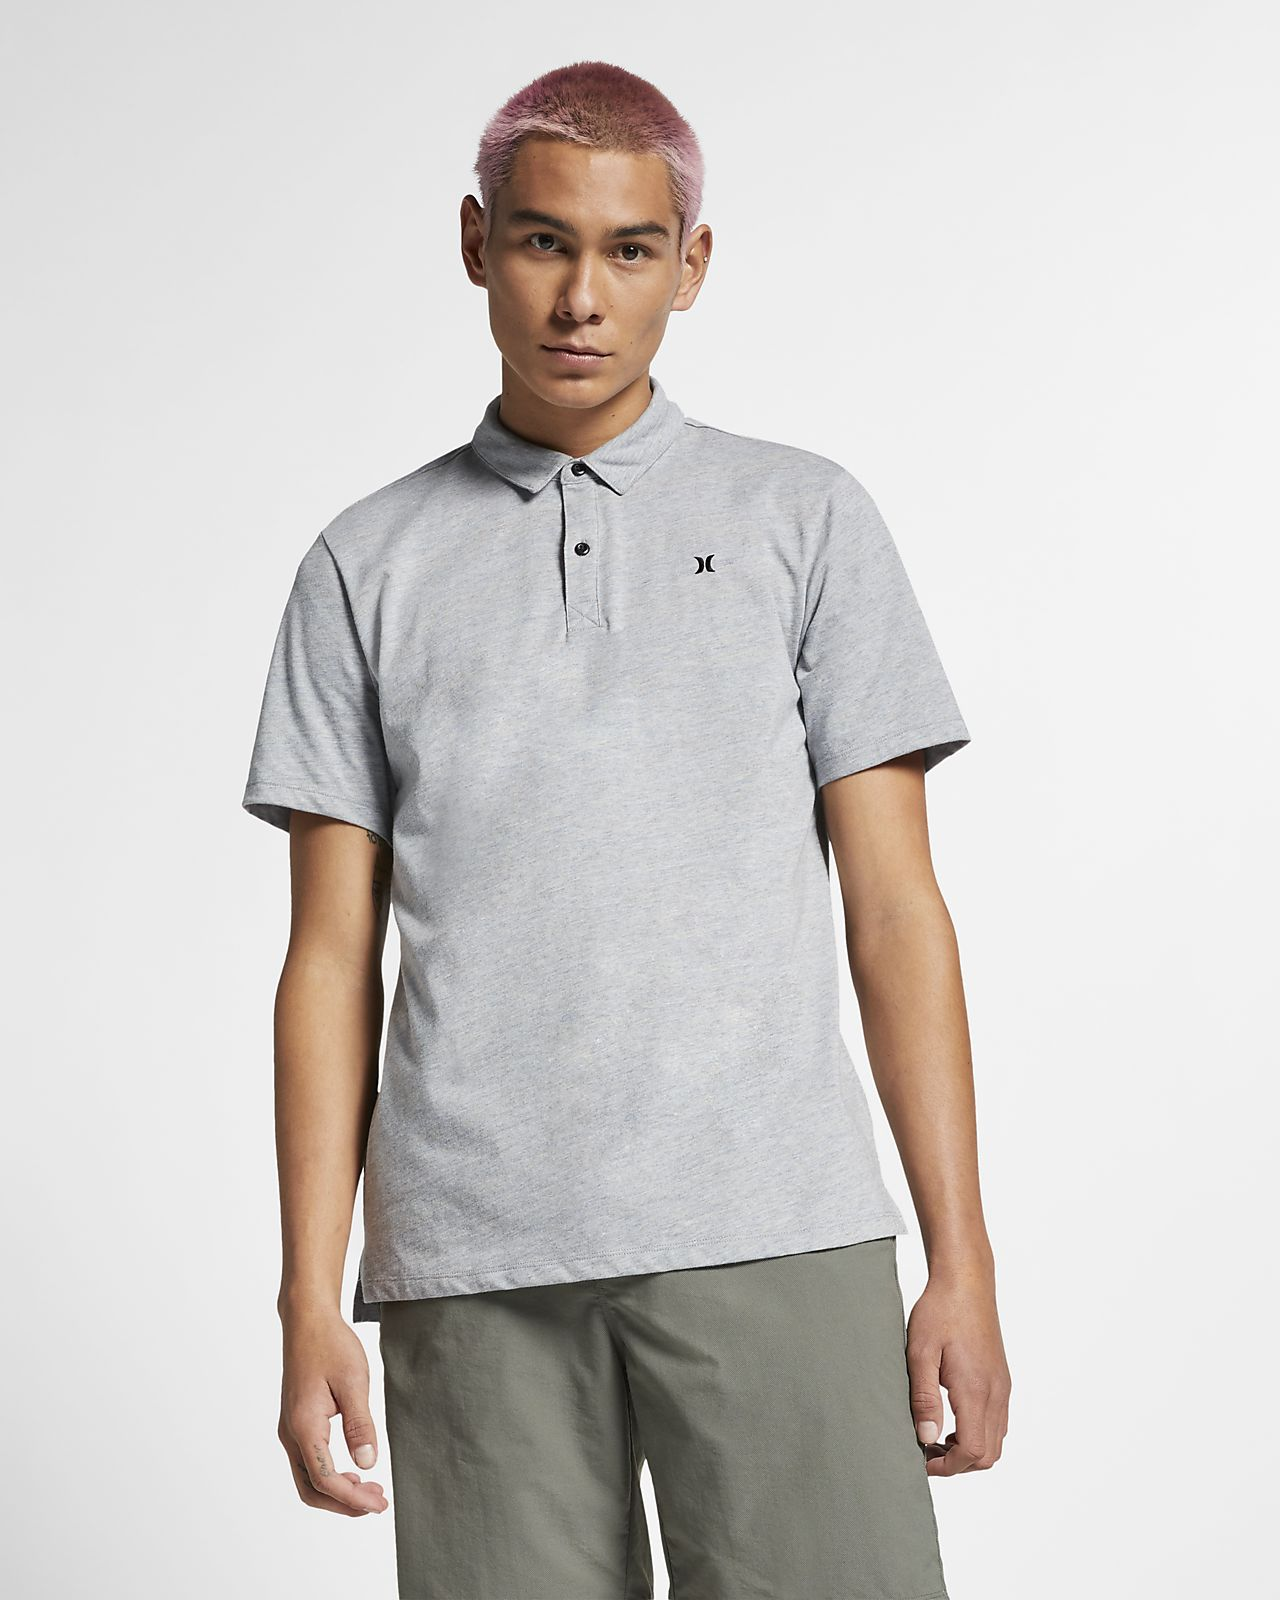 Hurley Dri-FIT Coronado Men's Polo